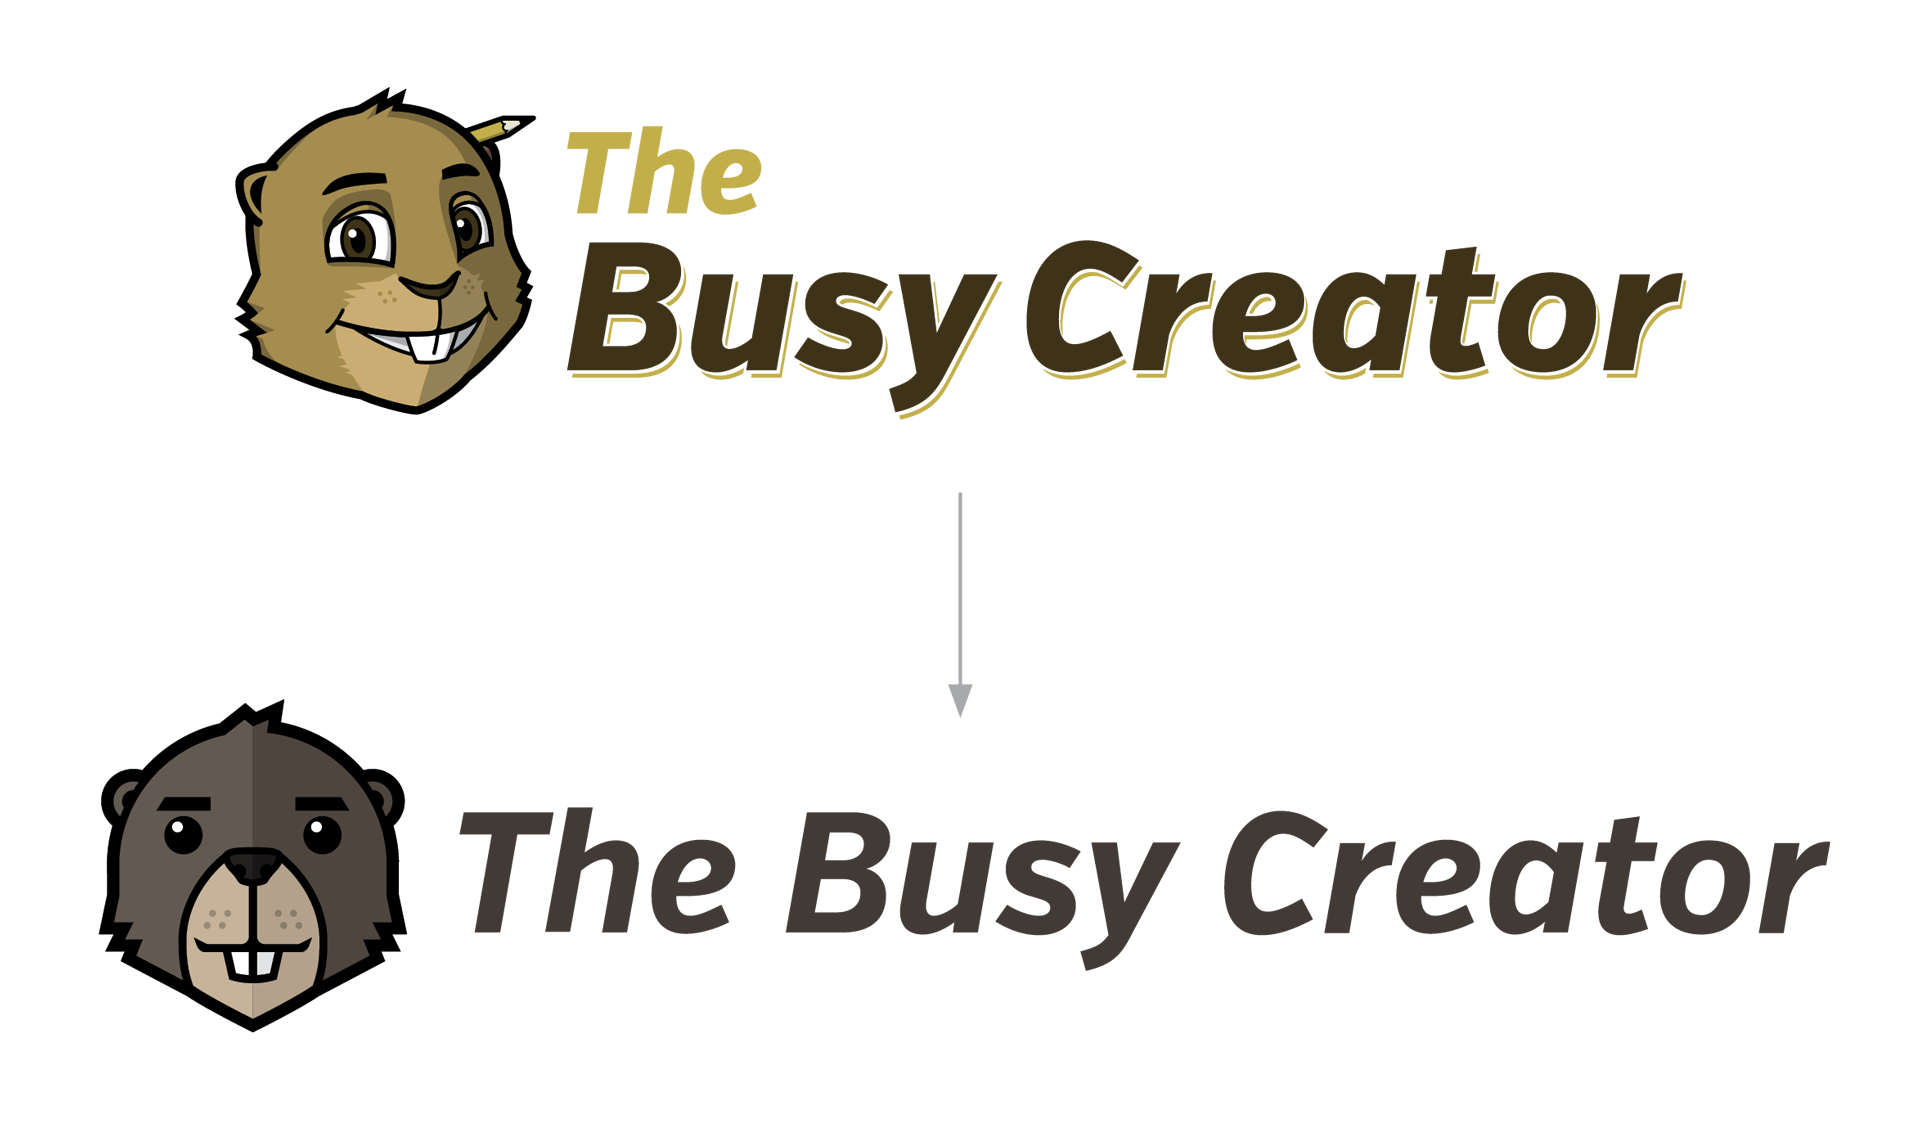 The Busy Creator logo before-and-after